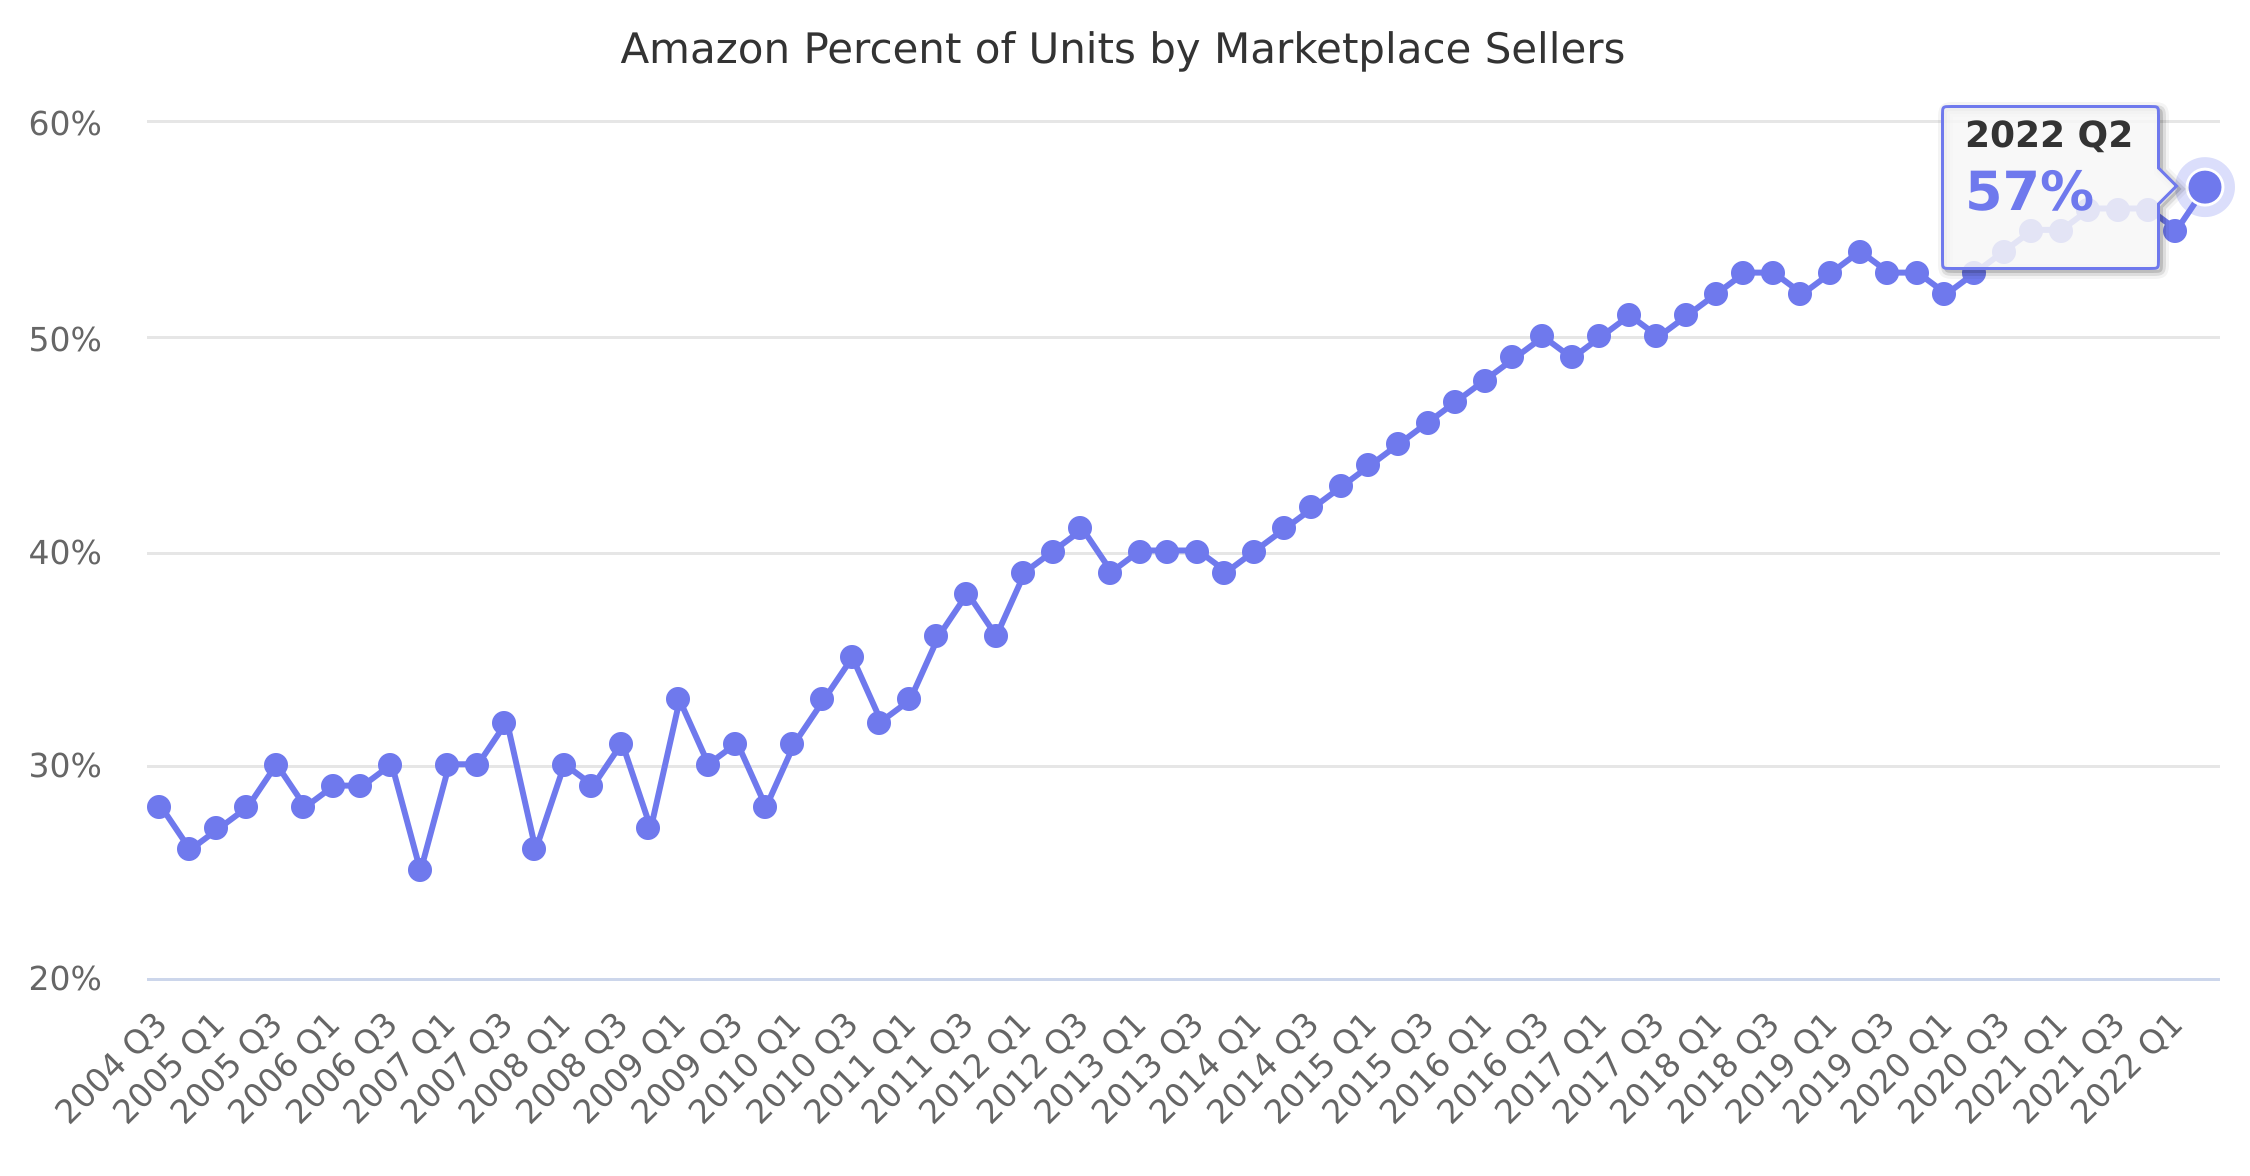 Amazon Percent of Units by Marketplace Sellers 2004-2019